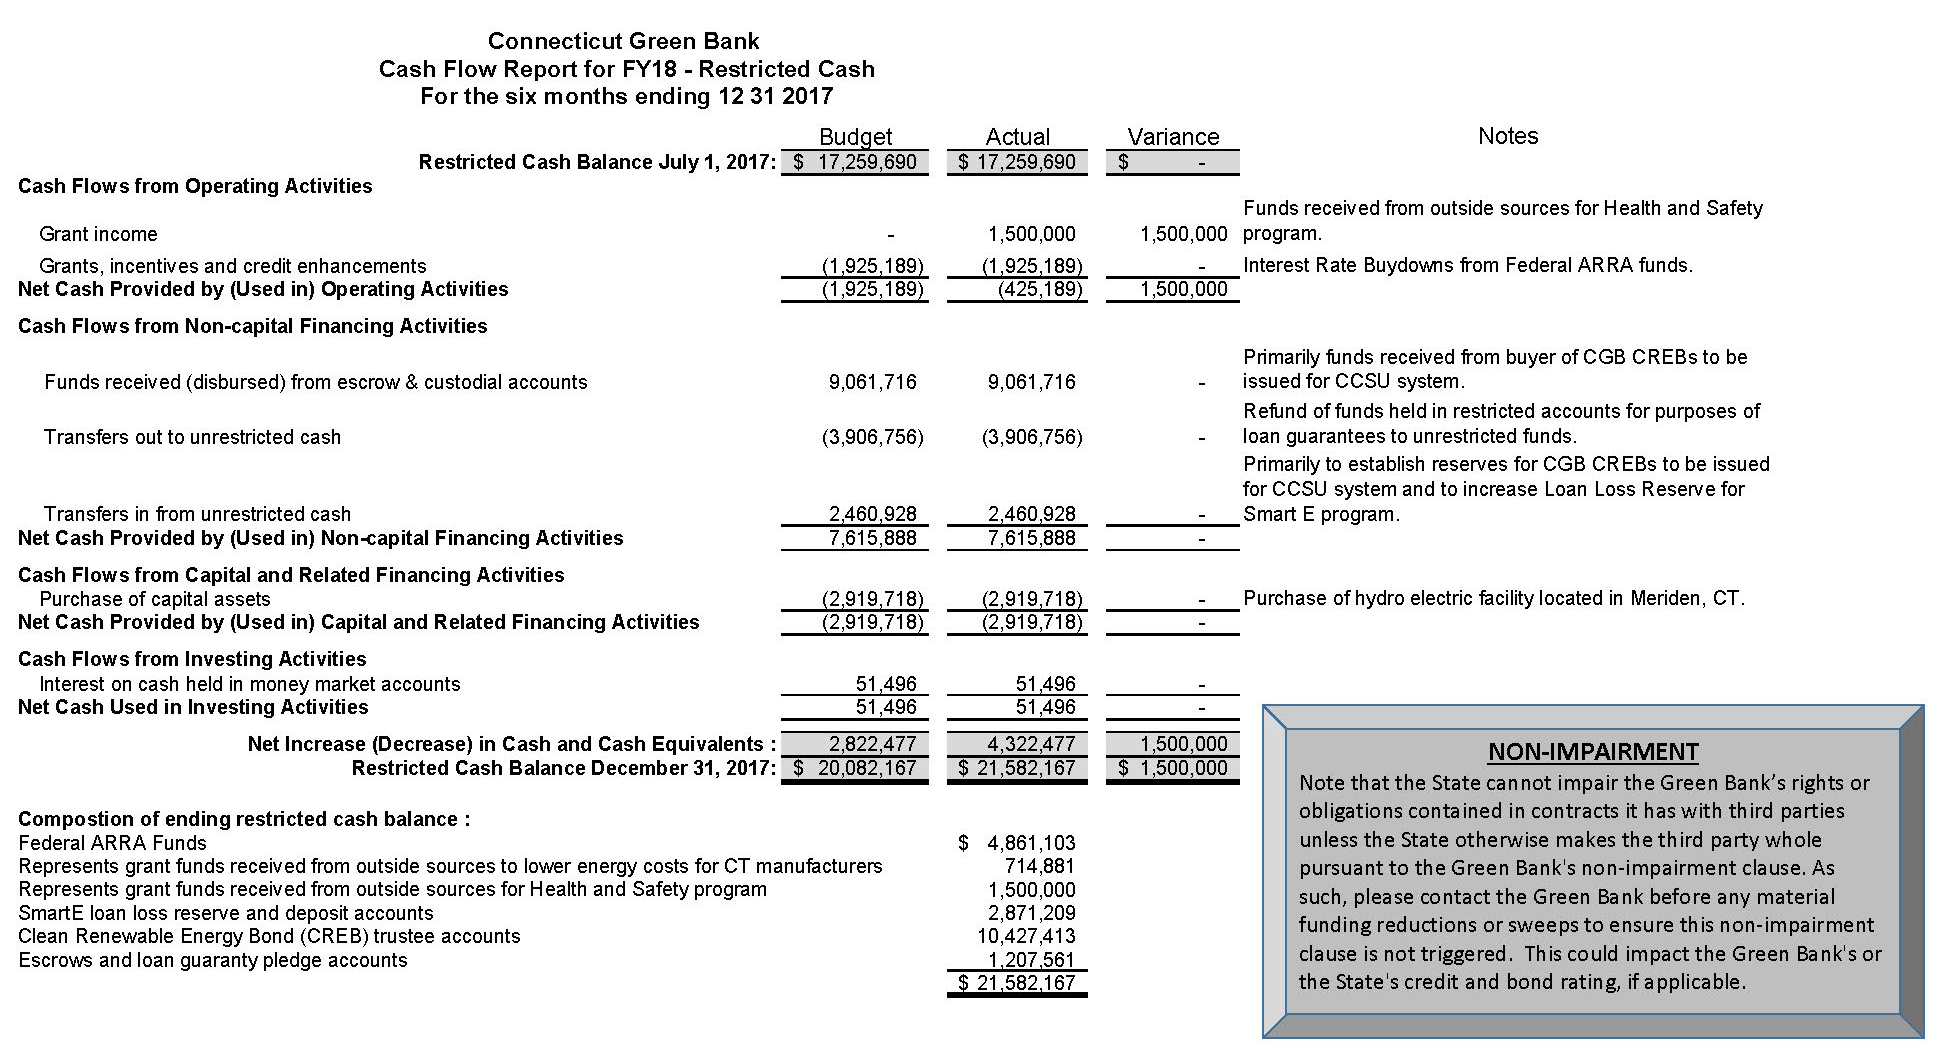 FY18 Q2 12 31 2017 CGB Cash Flow Report_Submitted_R_Page_1a